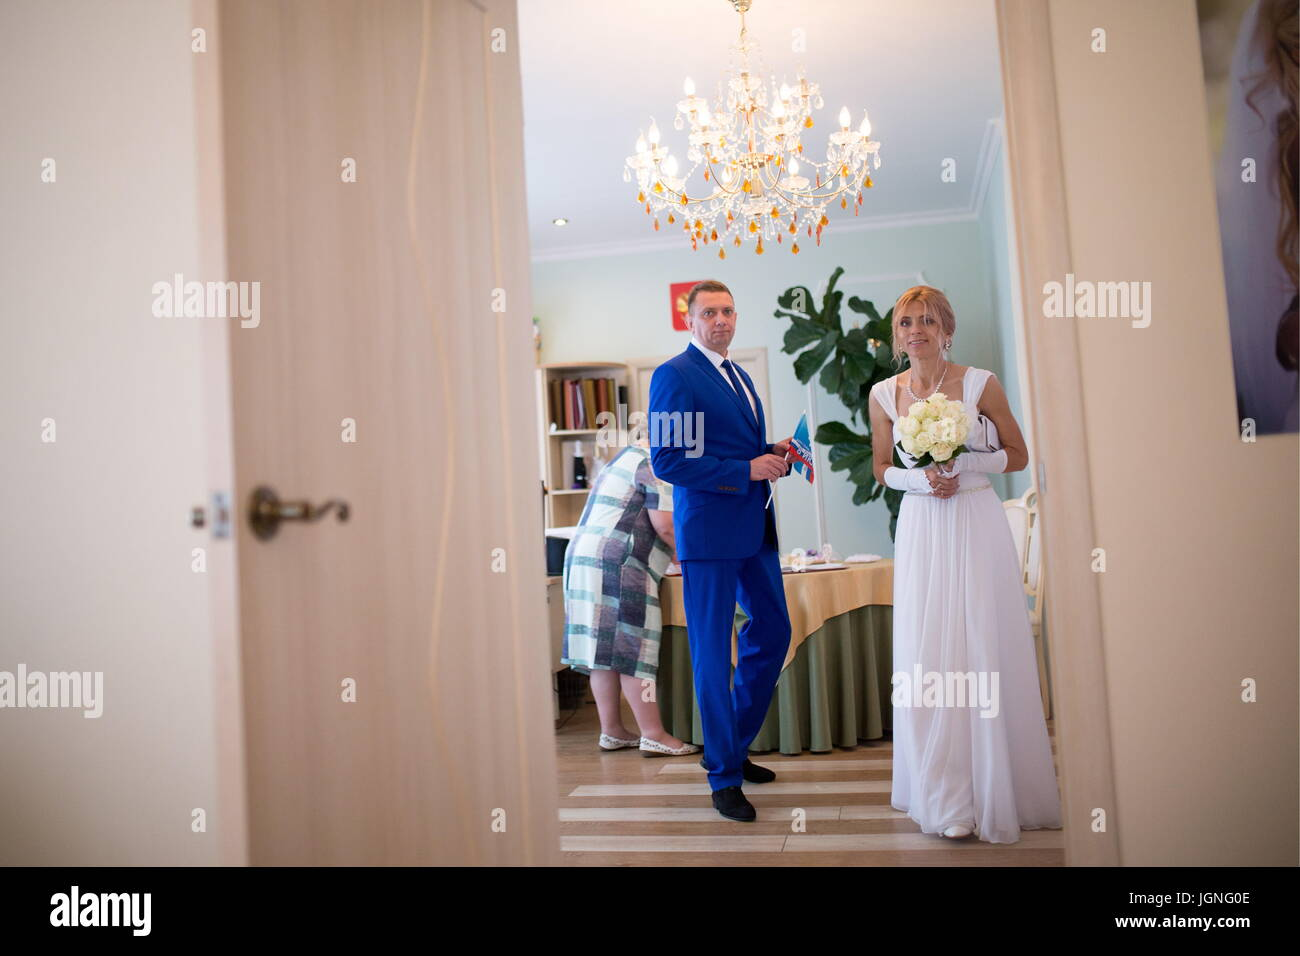 Pushkin registry office - the place to register your marriage